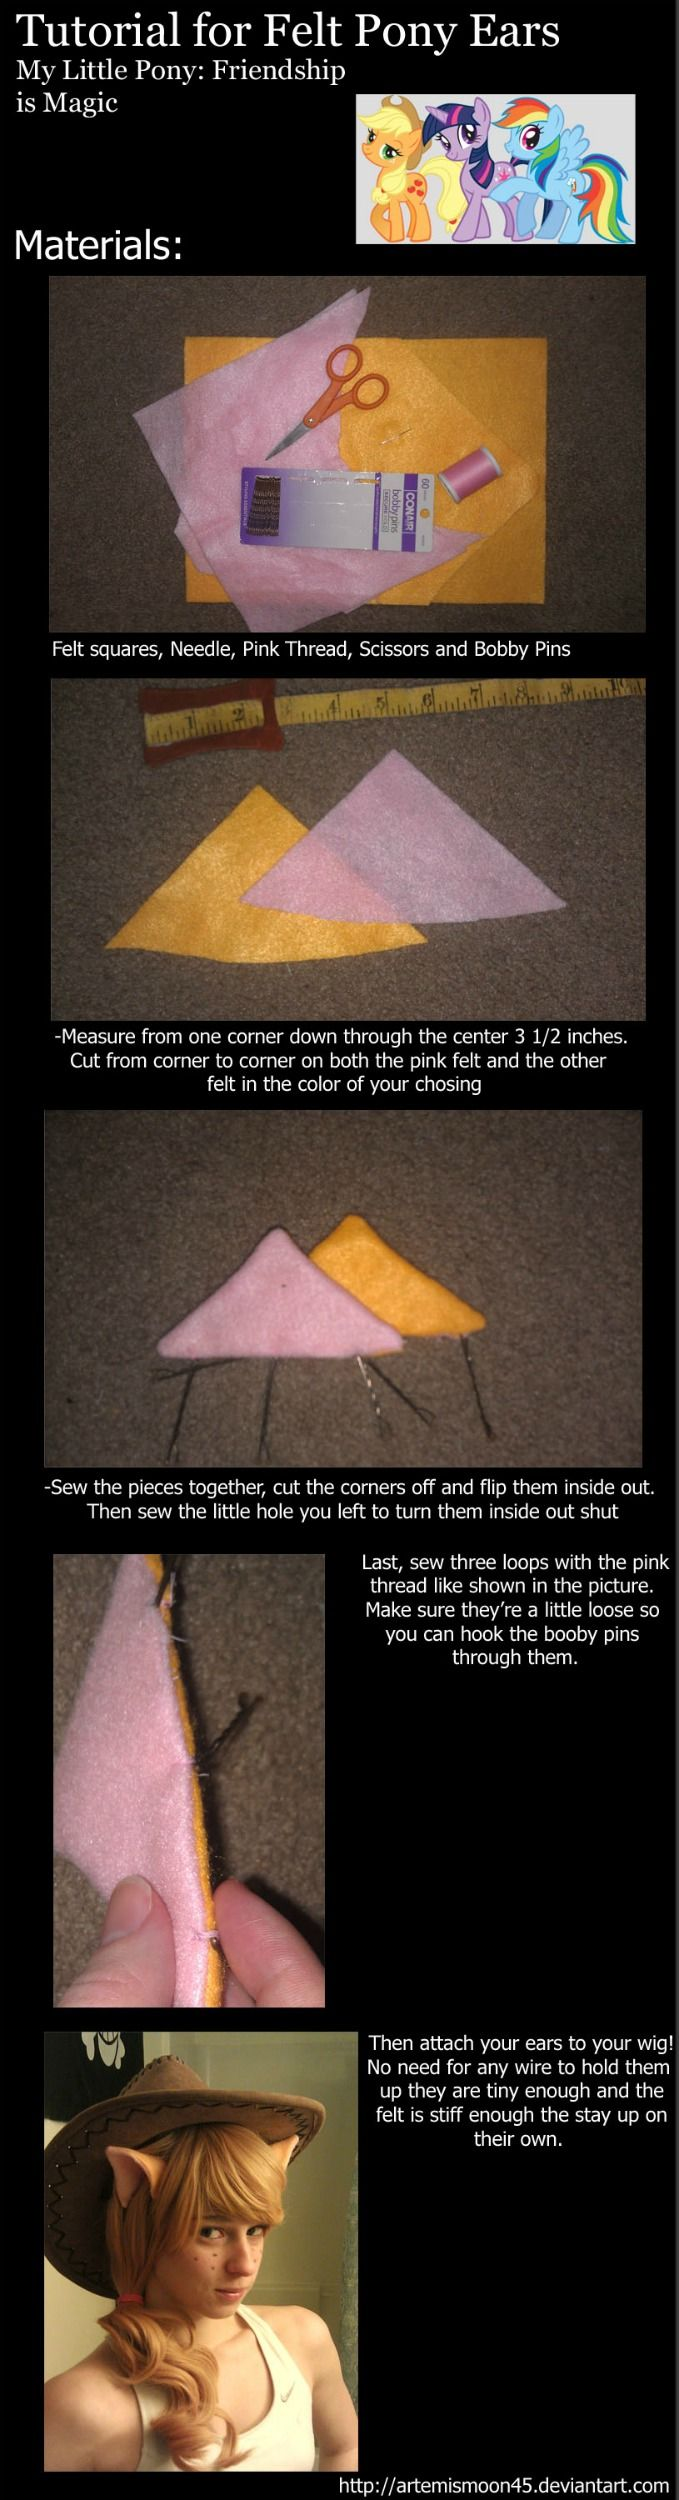 Felt Pony Ears Tutorial MLP:FiM by *ArtemisMoon45